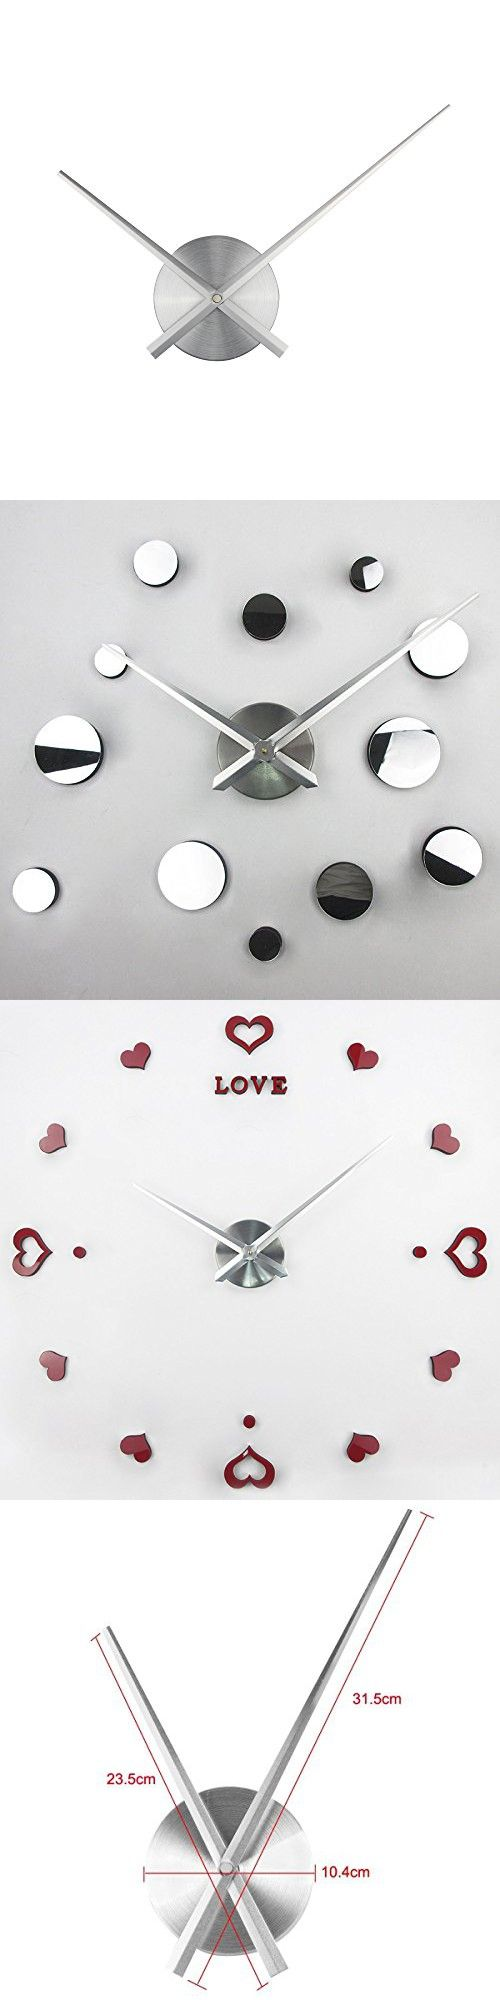 Best 25 large silver wall clock ideas on pinterest clocks wall 3d clock hands timelike diy large clock hands needles wall clocks 3d home art decor amipublicfo Gallery